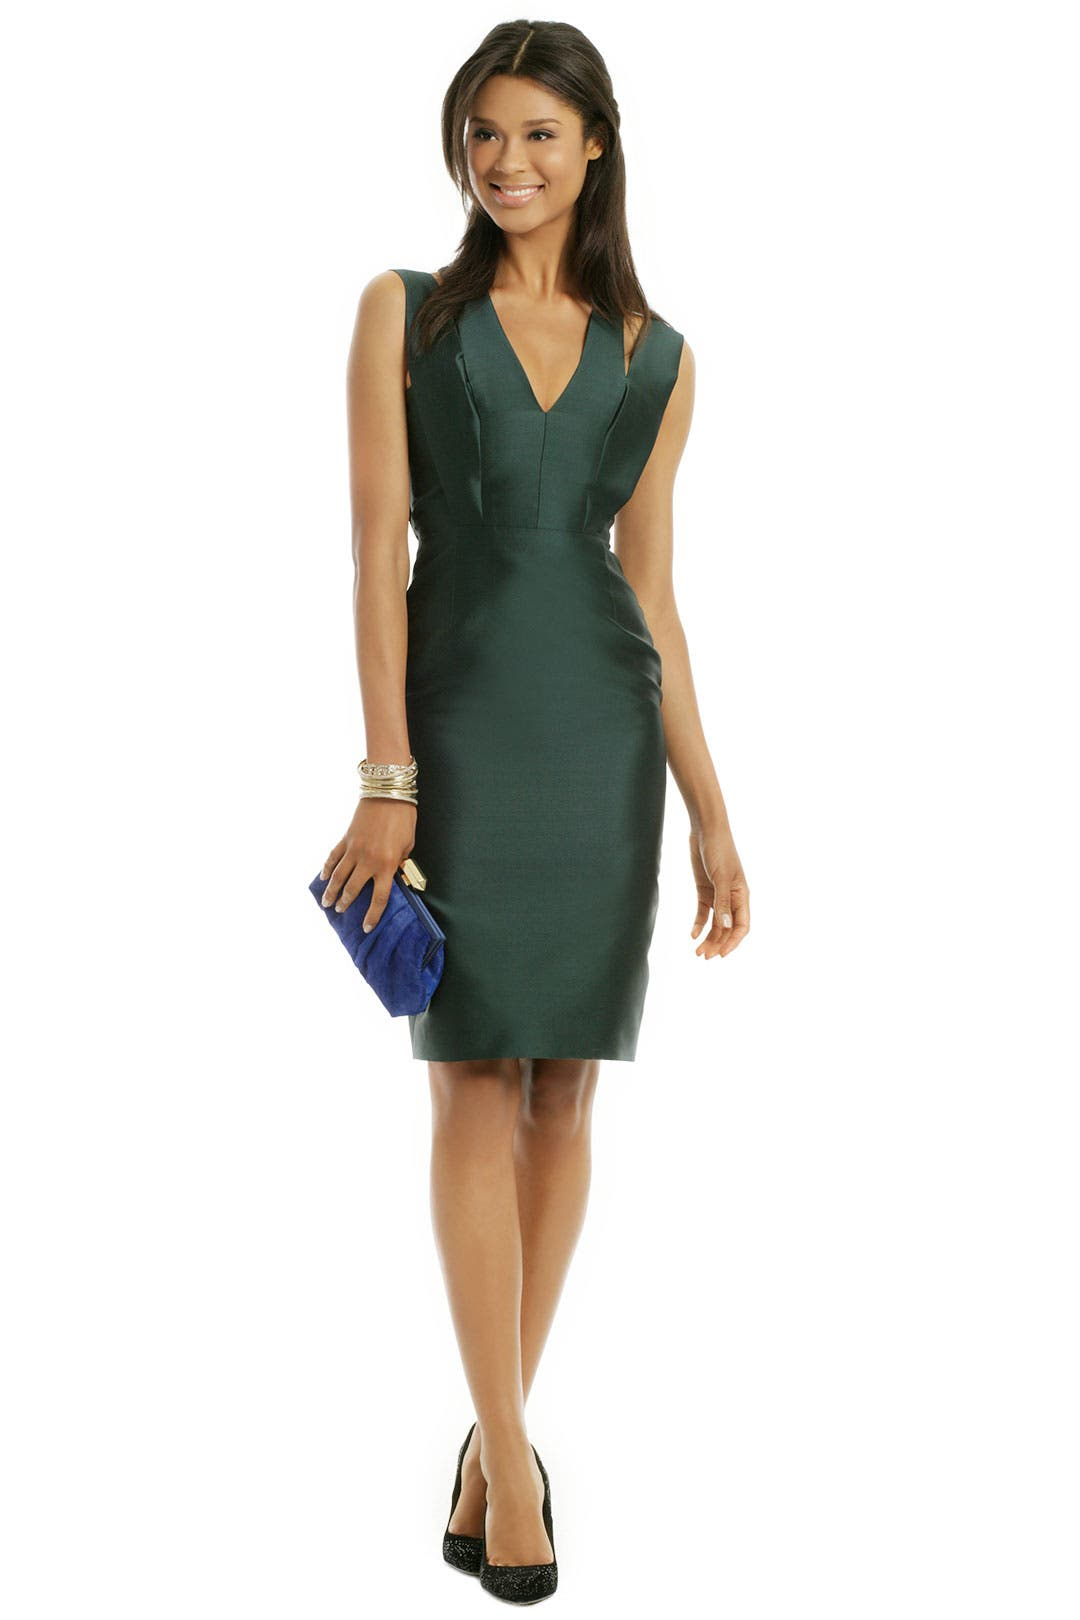 Make It Count Dress by Cushnie Et Ochs